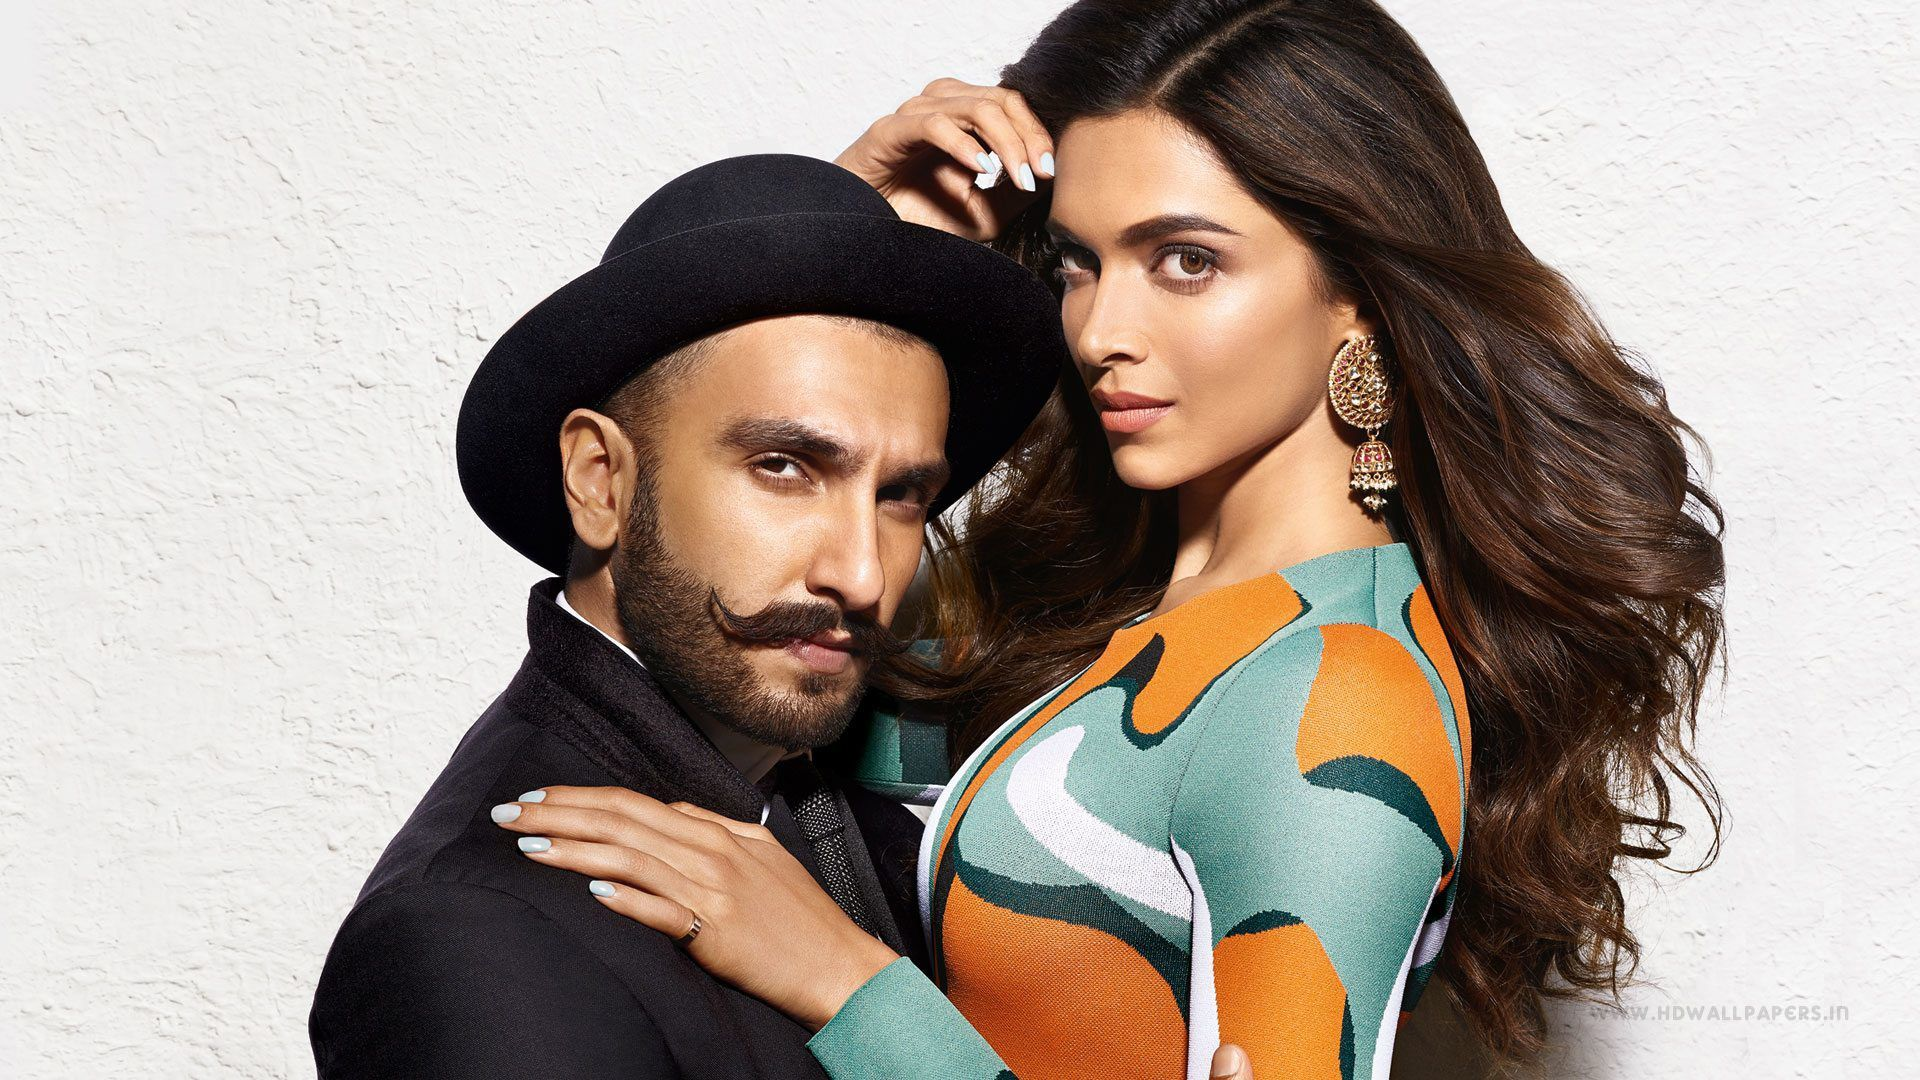 Ranveer Singh Deepika Padukone Hd Wallpapers Bollywood Celebrities Ranveer Singh Deepika Ranveer